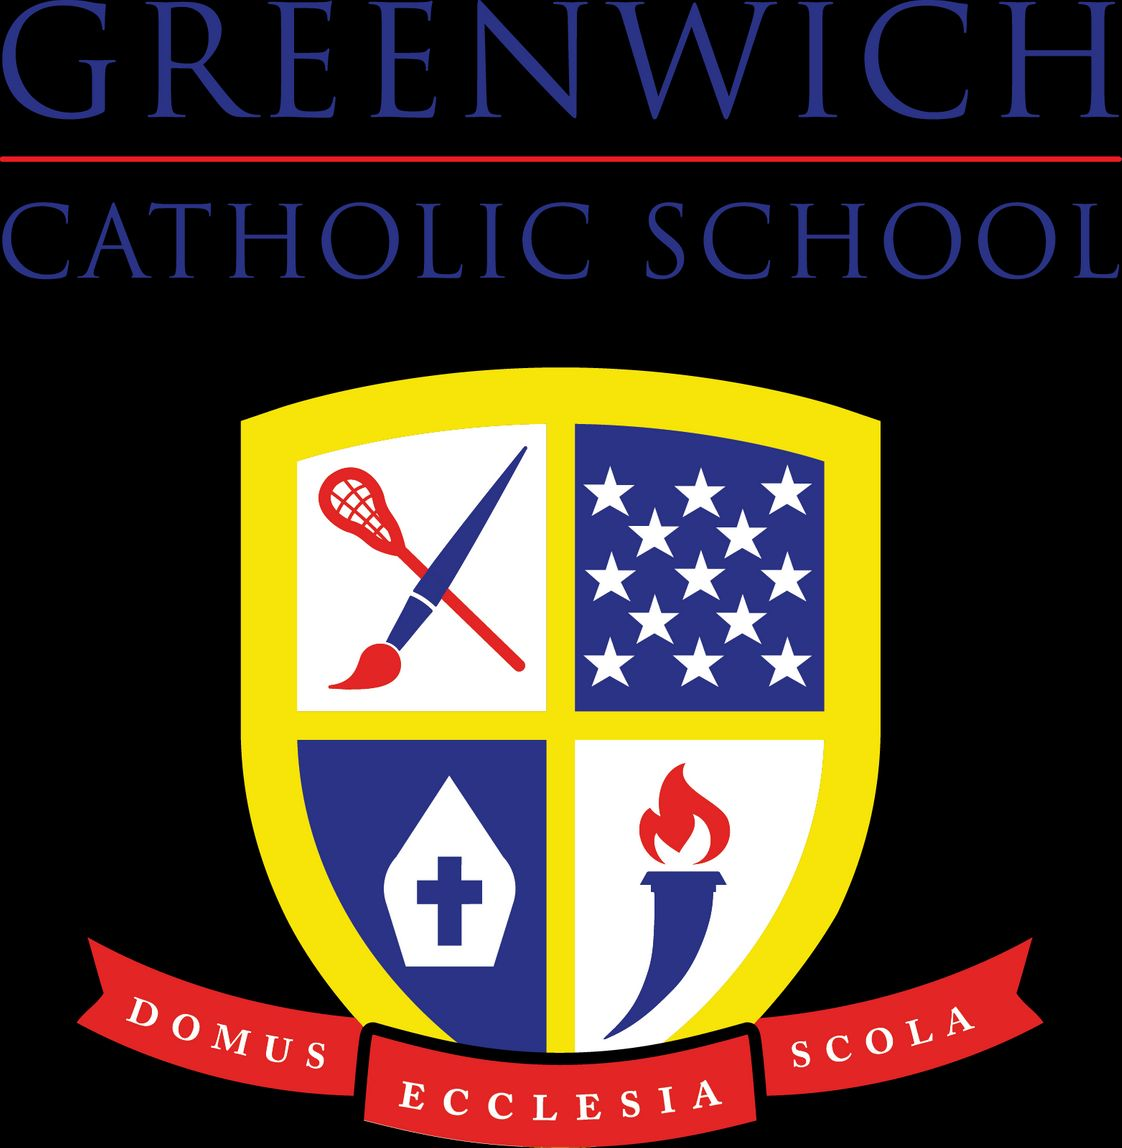 Greenwich Catholic School Photo #1 - Rooted in Faith. Surrounded by Community. Committed to Excellence.